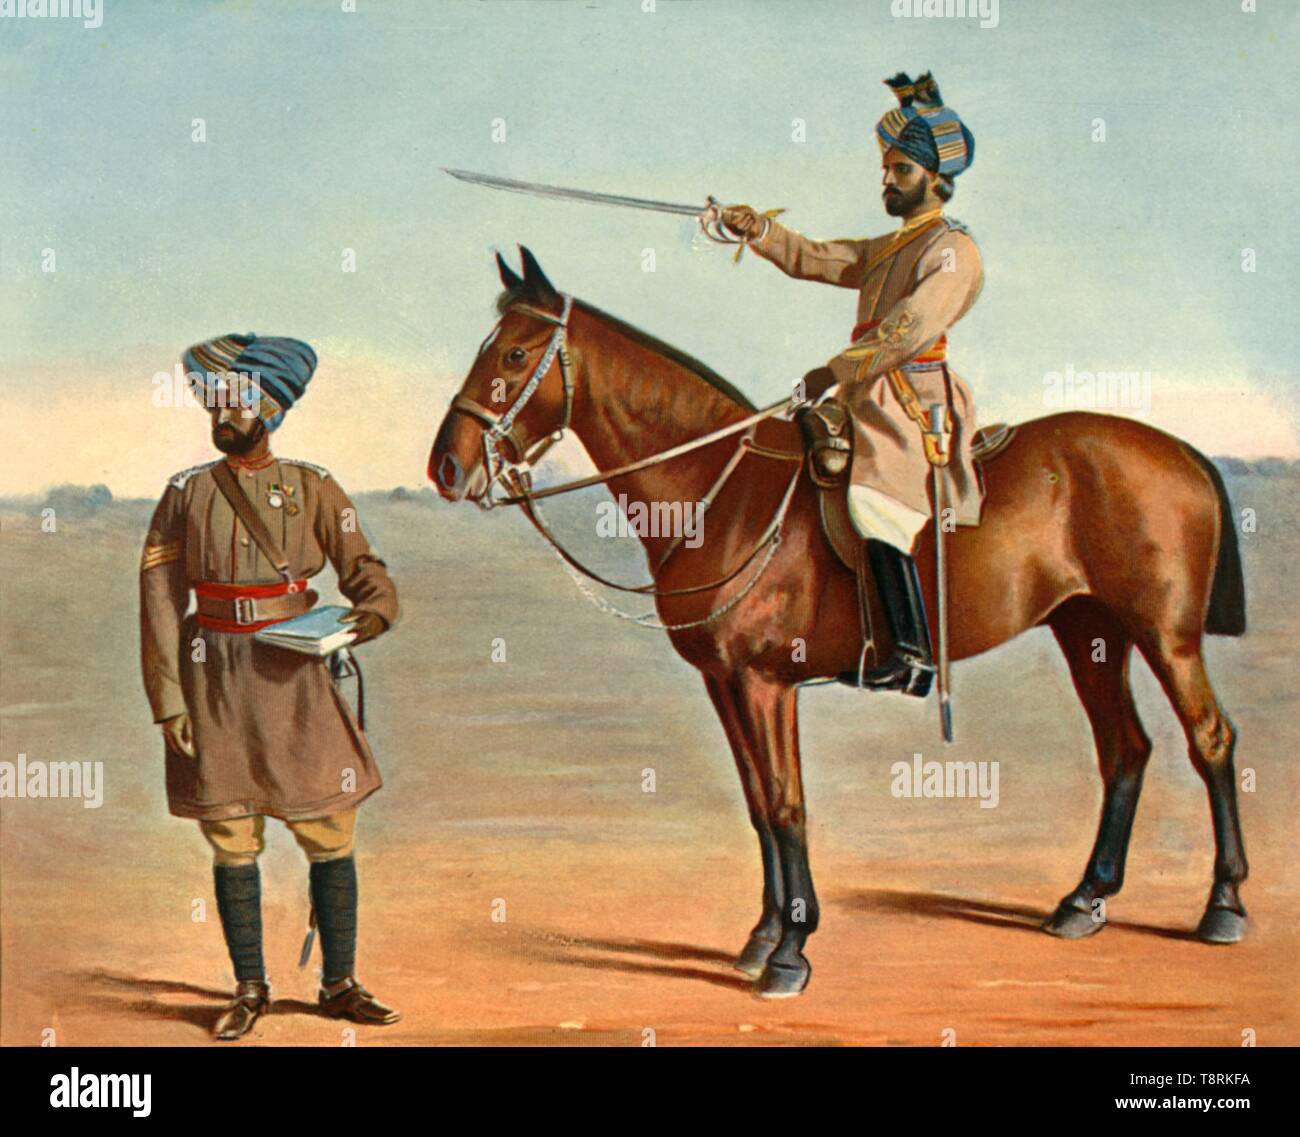 """'The Central India Horse', 1901. Indian soldiers during the period of the British Raj. The Central India Horse was a cavalry regiment of the British Indian Army, formed at the start of the Indian Rebellion of 1857. The regiment served in the Great War and the Second World War. From """"The Life and Deeds of Earl Roberts, Vol. II. - To The Abdication of Yakub Khan"""", by J. Maclaren Cobban. [T. C. & E. C. Jack, Edinburgh, 1901] - Stock Image"""